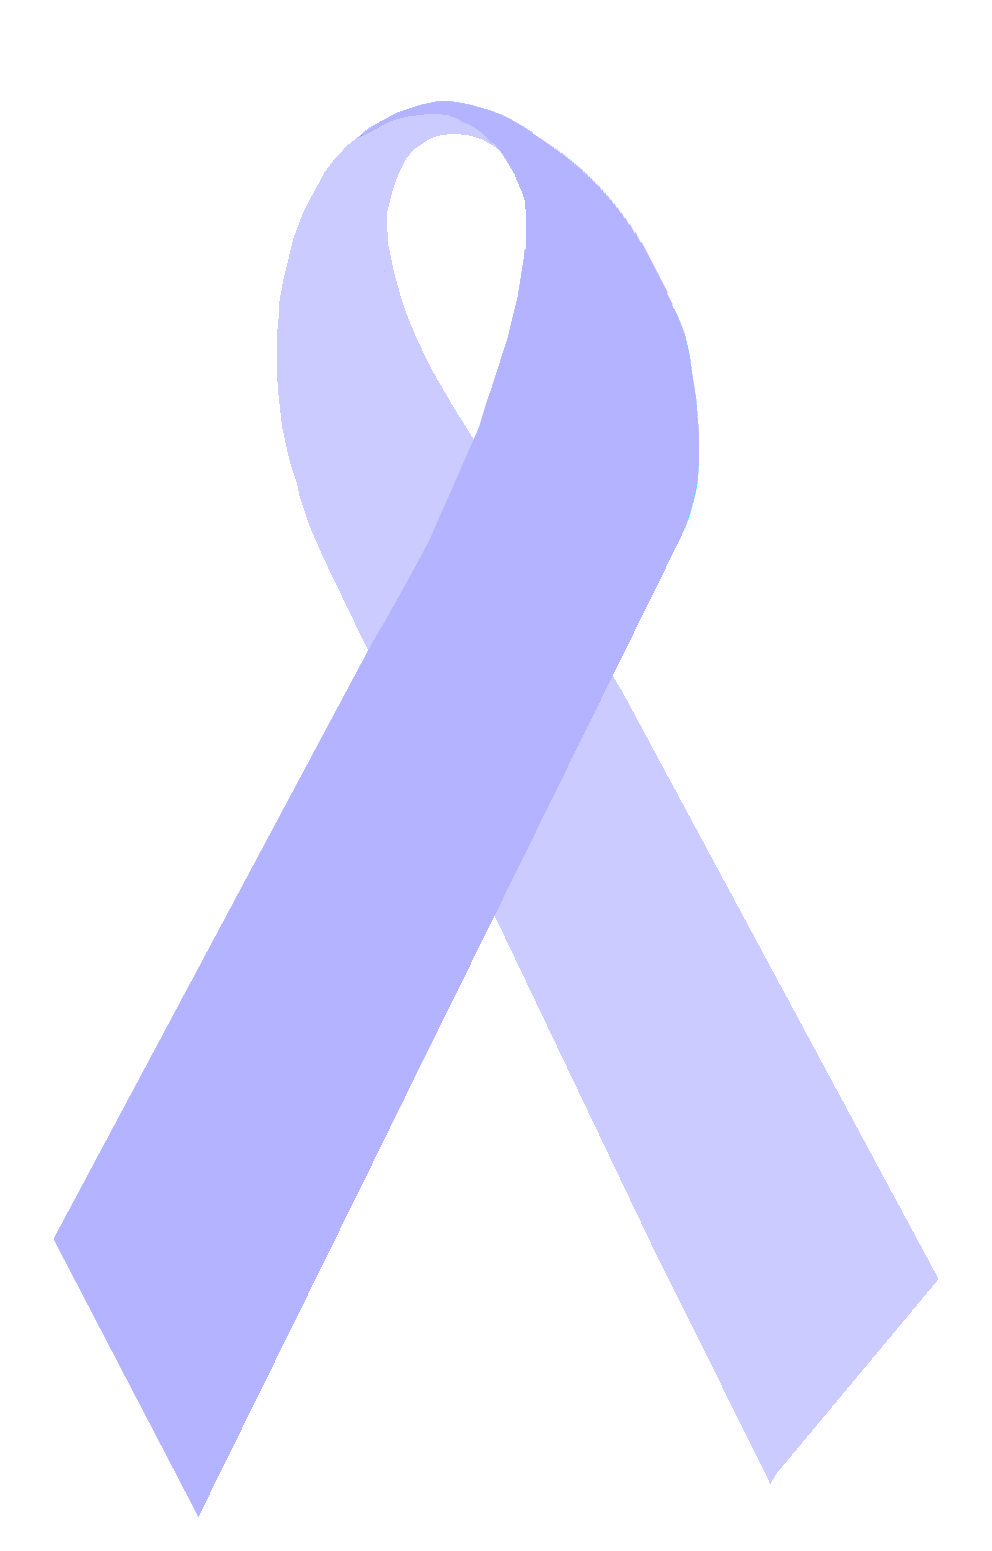 Periwinkle color for esophageal cancer awareness esophageal periwinkle color for esophageal cancer awareness biocorpaavc Gallery